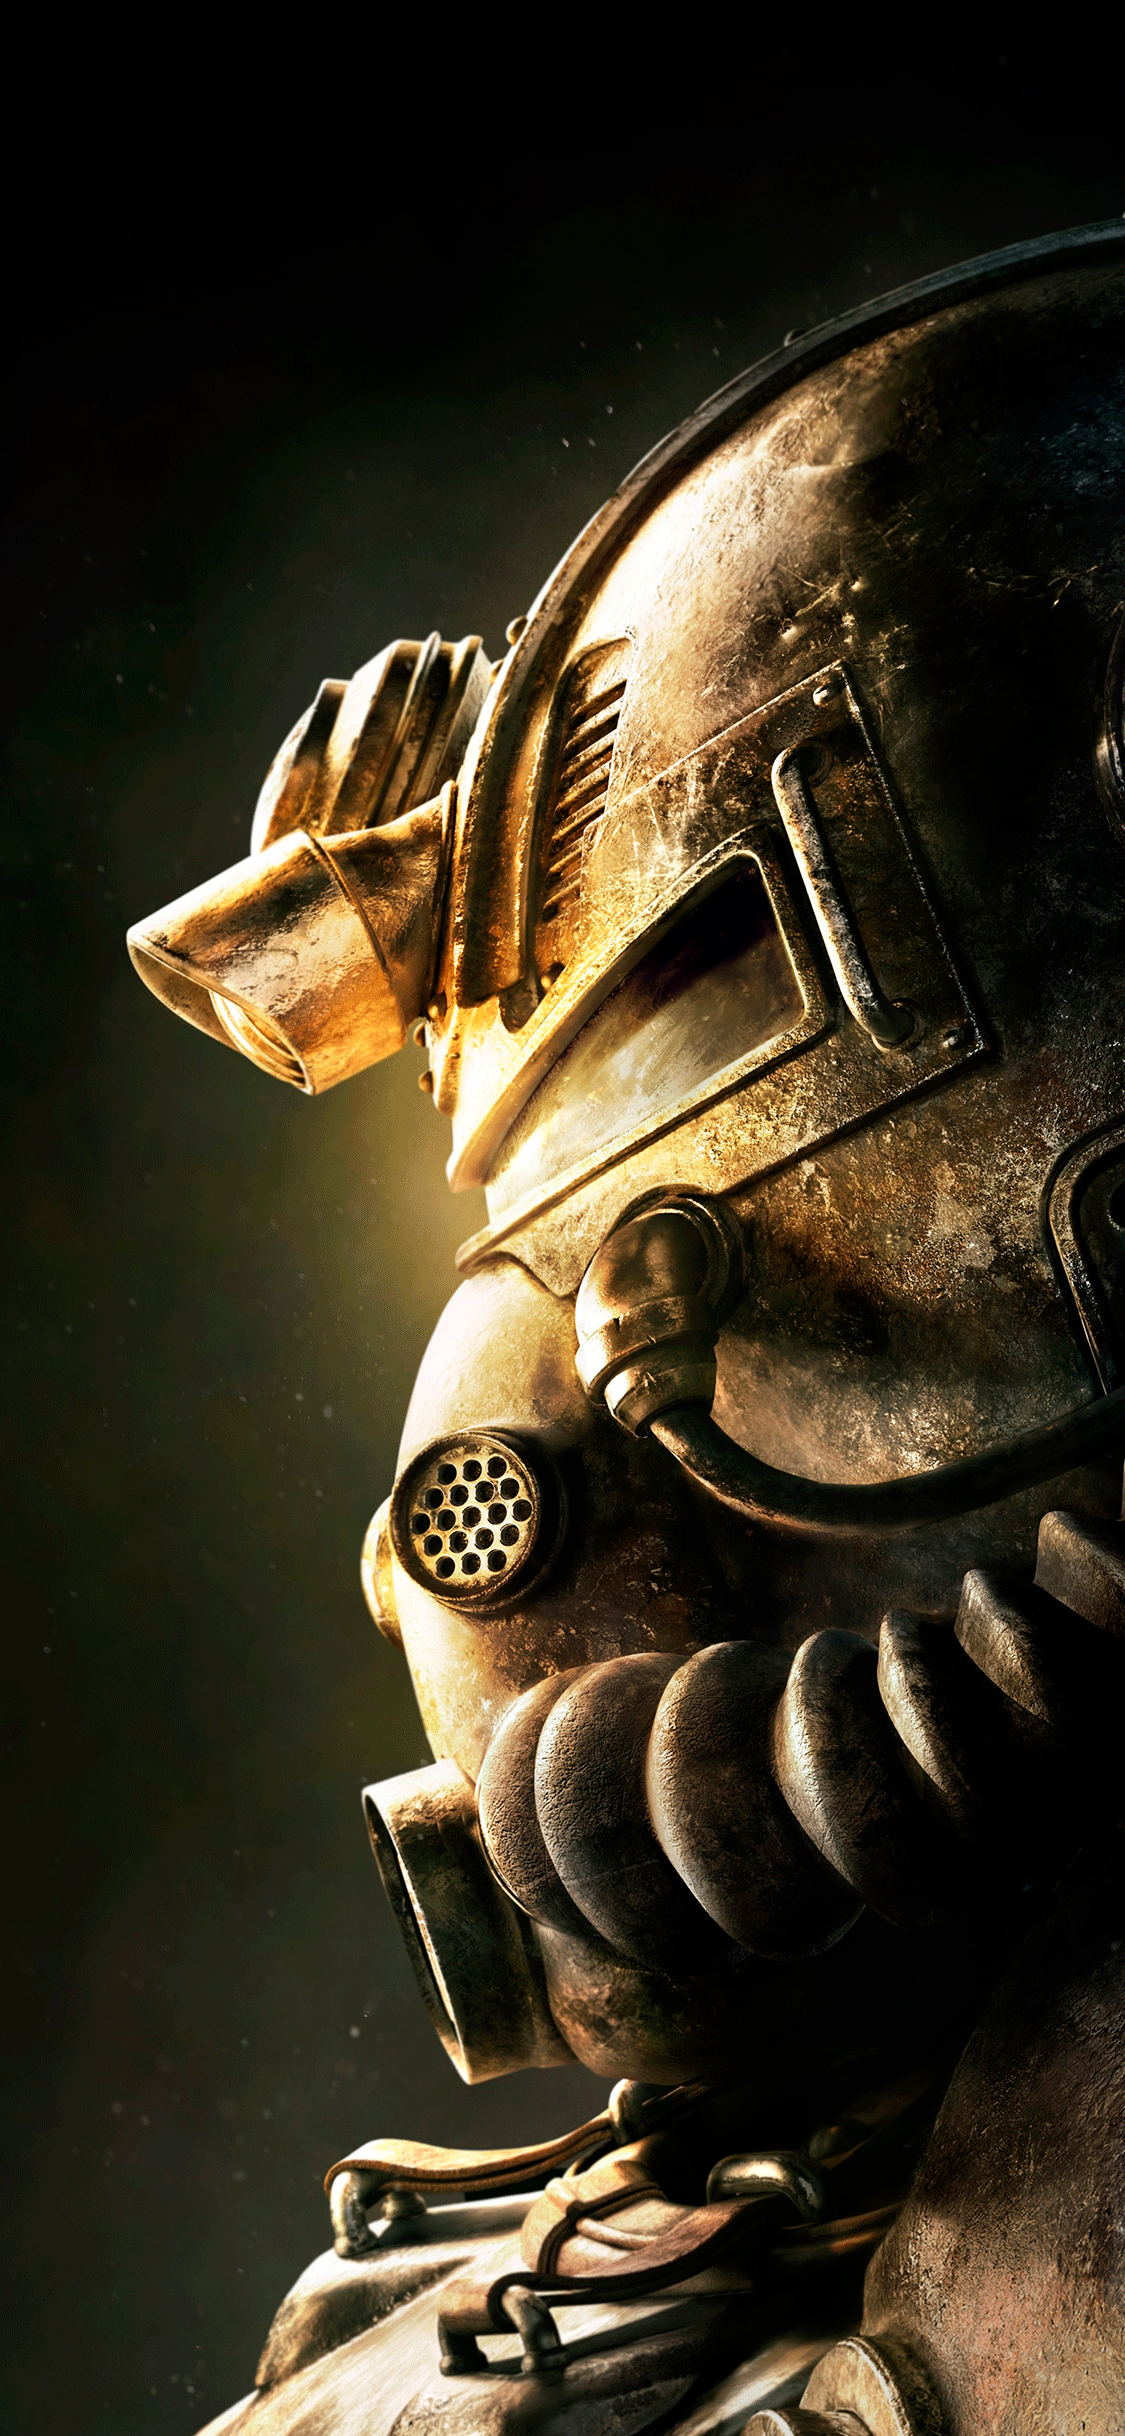 iPhone wallpaper fallout 76 1 Fallout 76